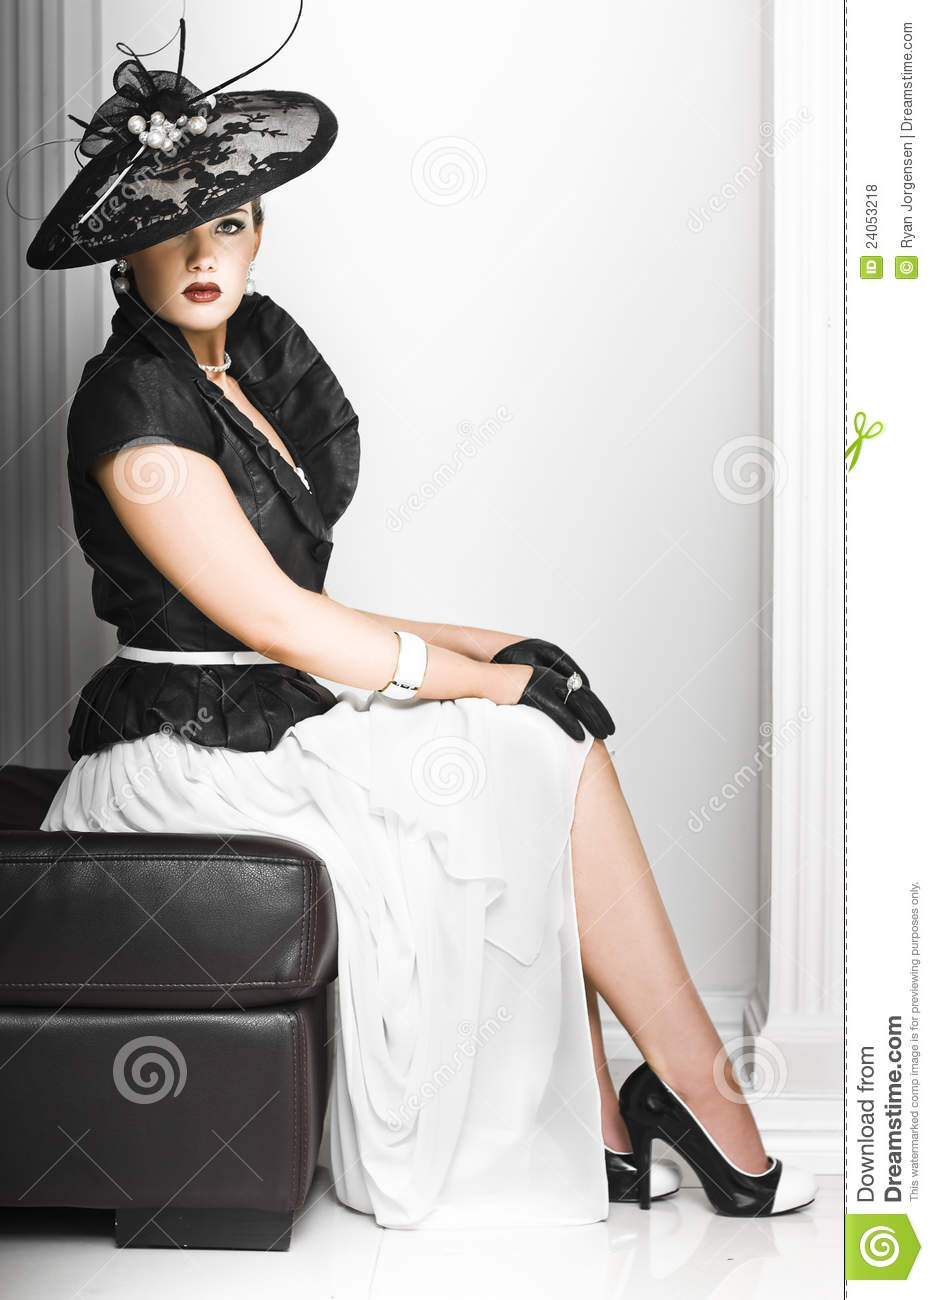 Classy Lady In Elegant Fashion Stock Photo Image 24053218